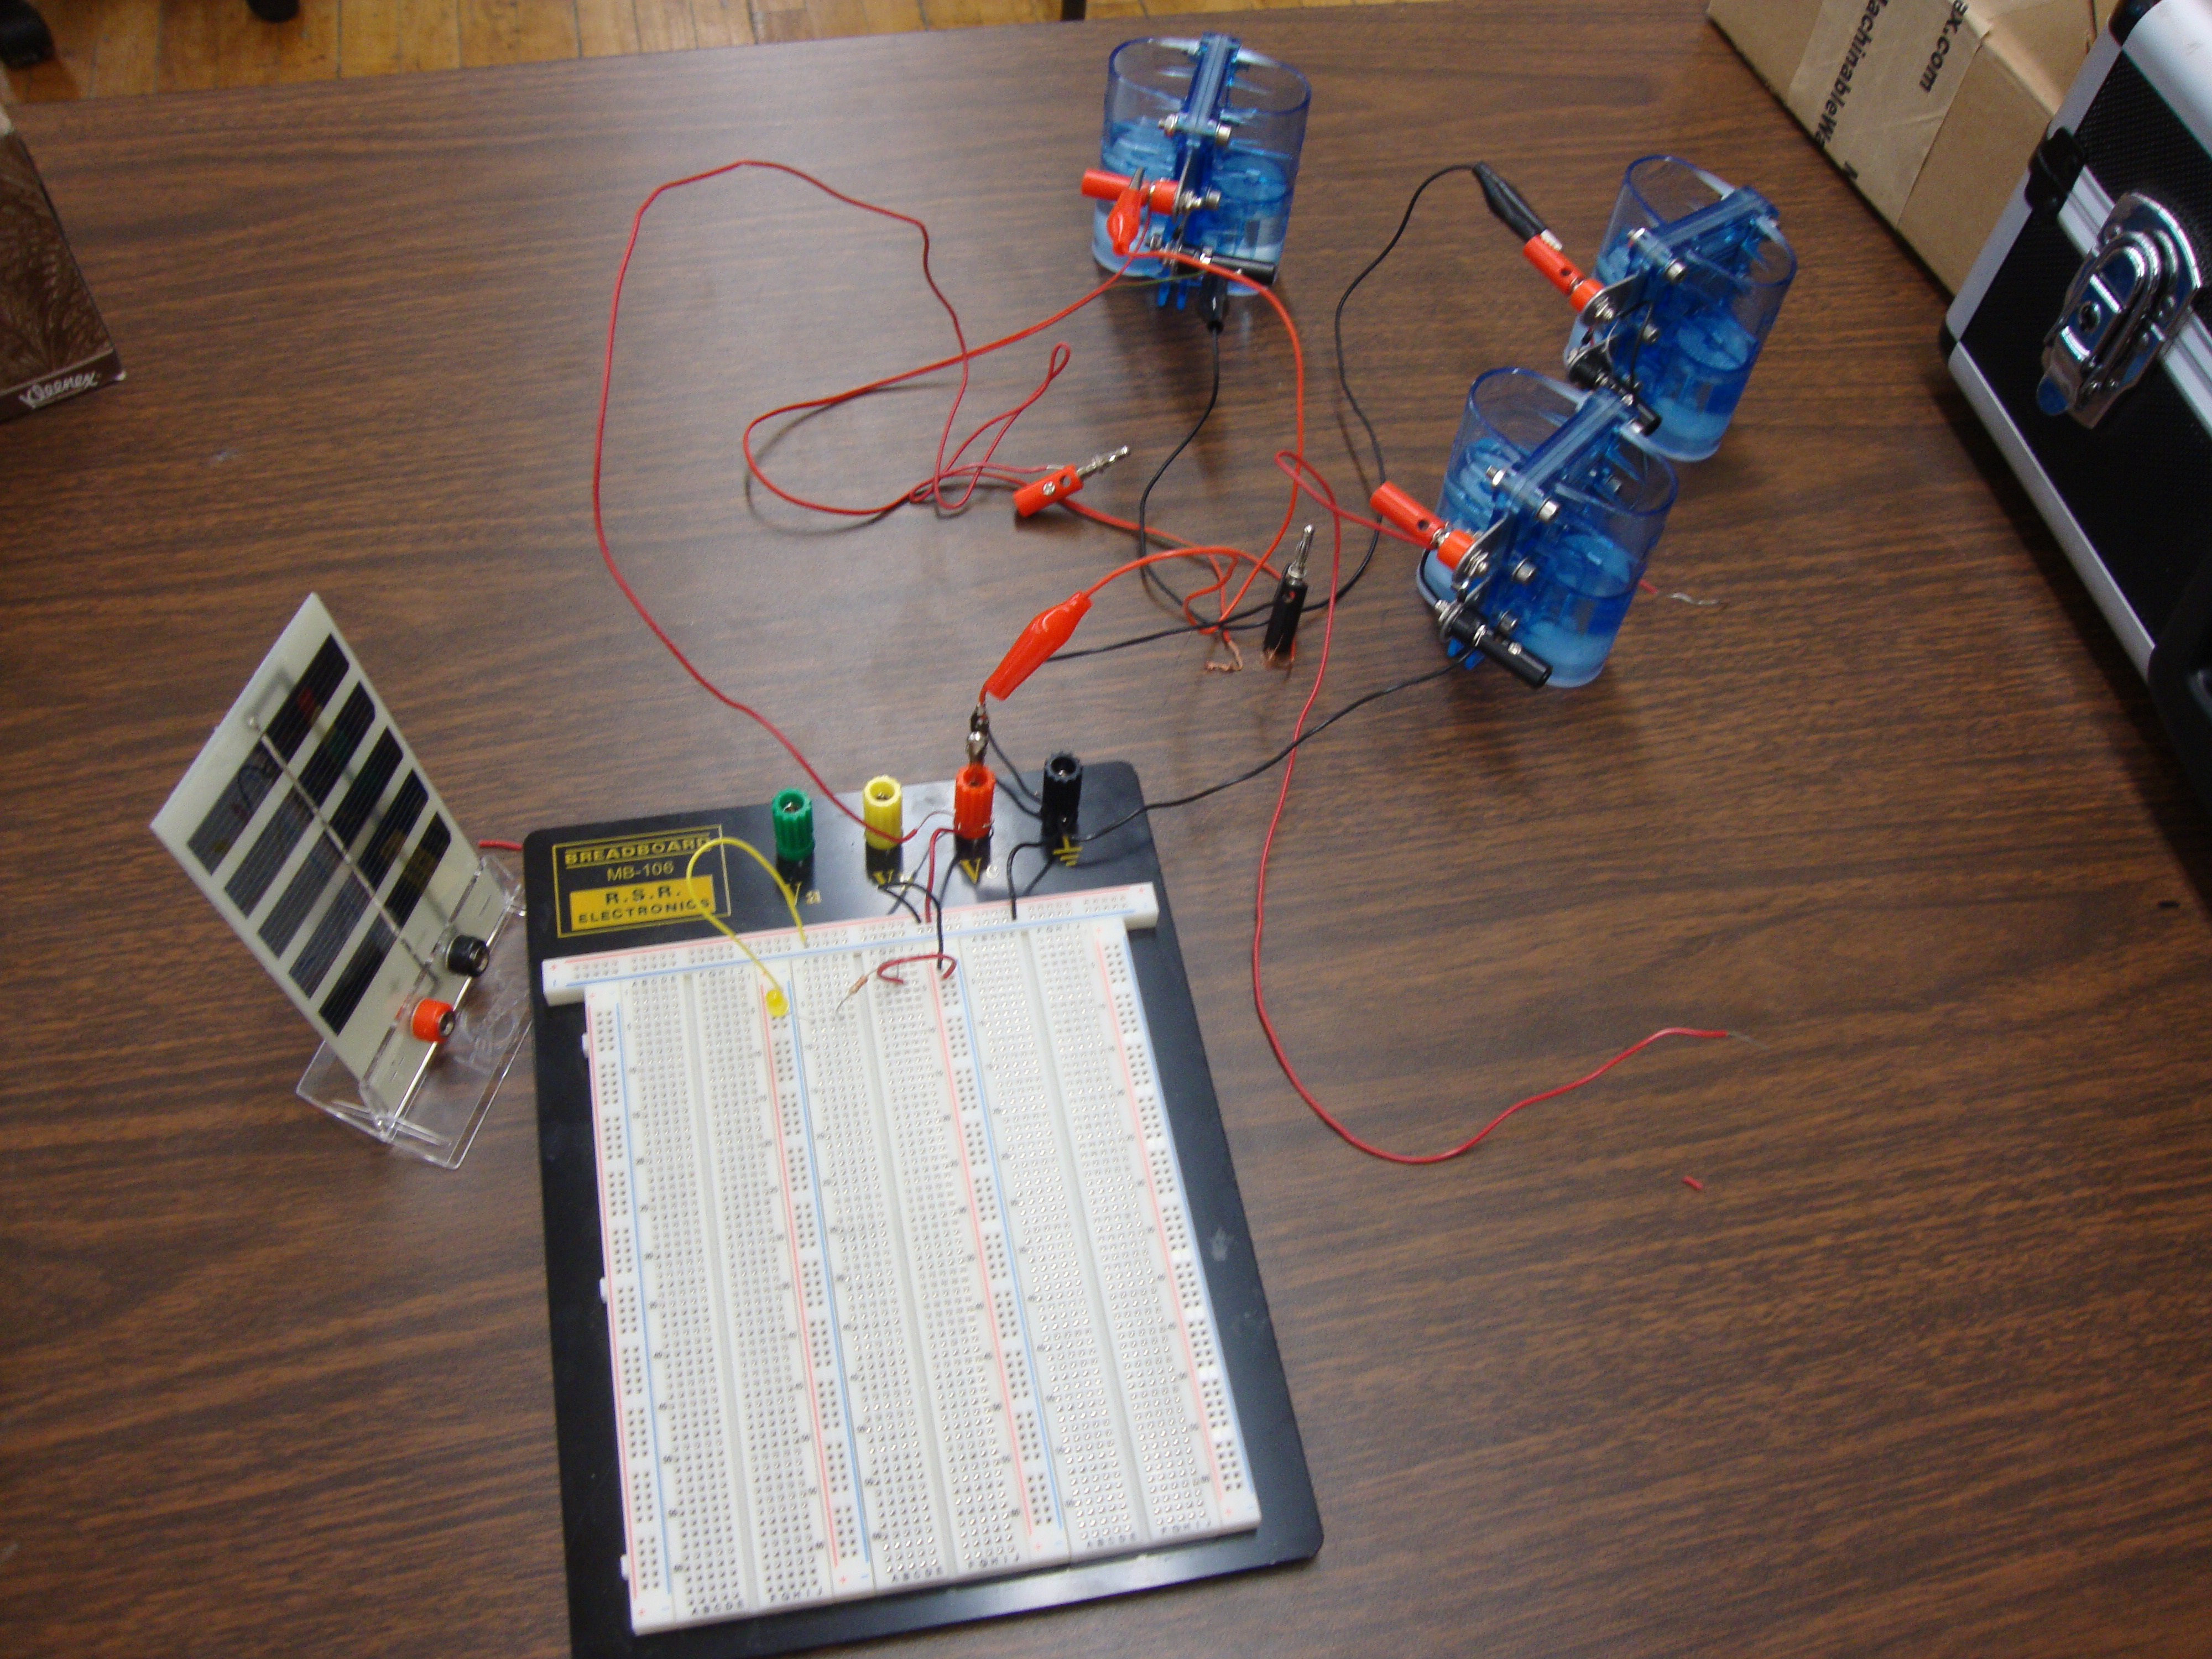 circuit poe maryland math madness  at nearapp.co